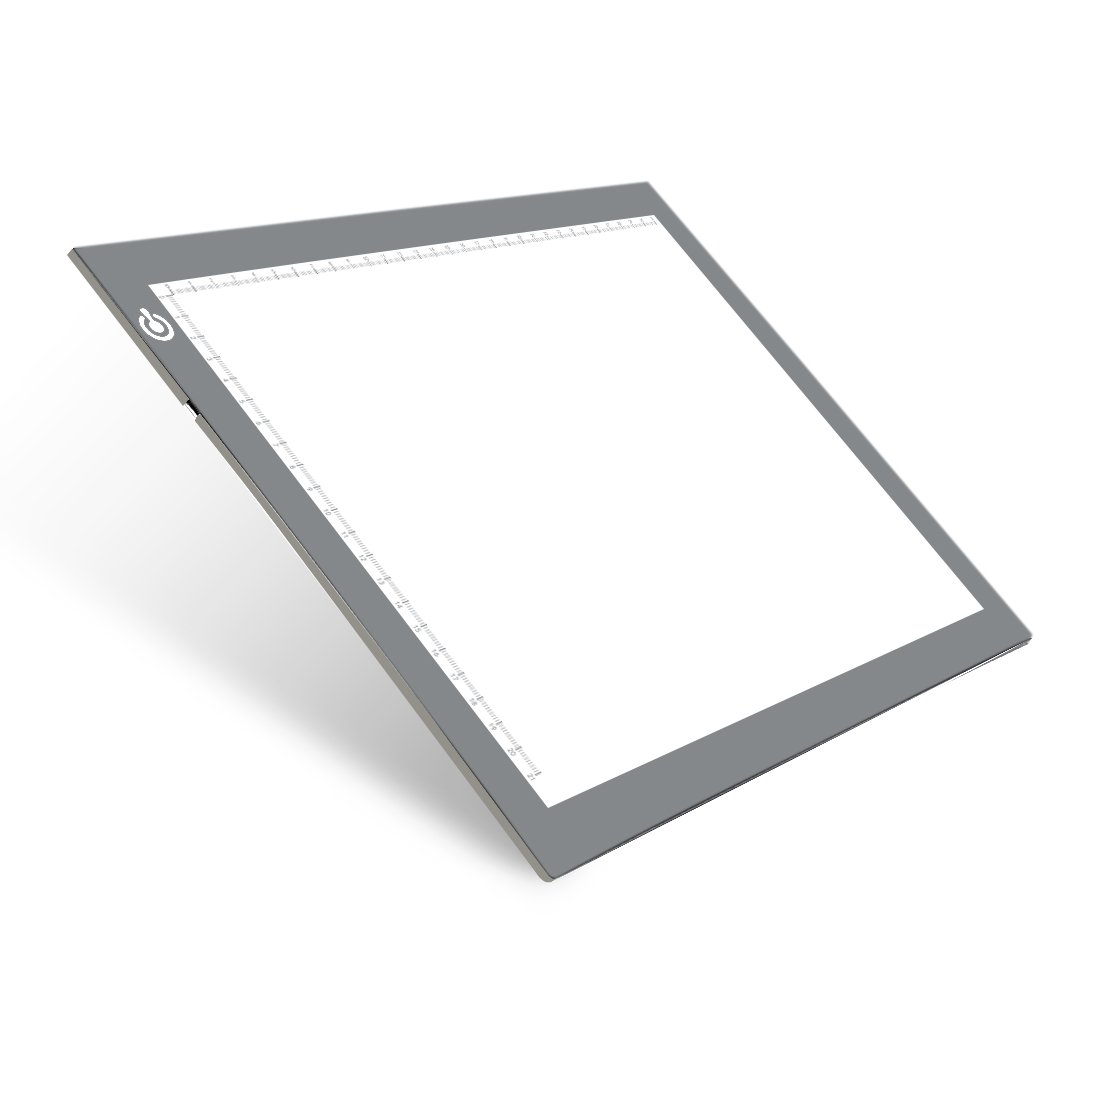 Copy Board A4 Drawing Light Pad, LED Ultra-Thin Light Board Adjustable Brightness for Tracing, Artists, Animation, Sketching, Designing NXDRS